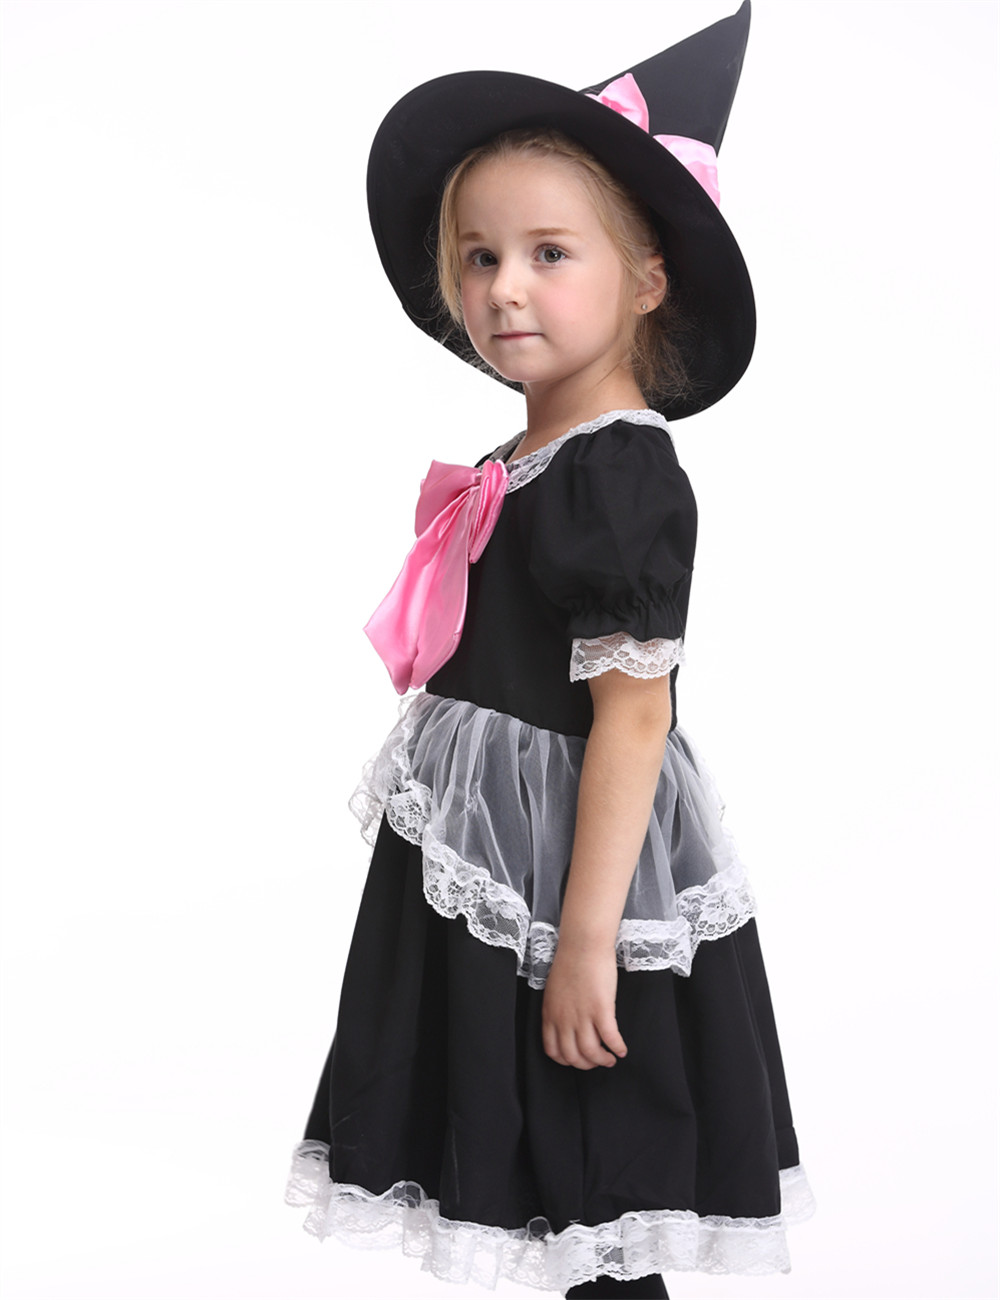 Children Girls Witch Costume Halloween Costume For Kids Stage & Dance Wear Toddler Short Sleeve Party Cosplay Skirt Black